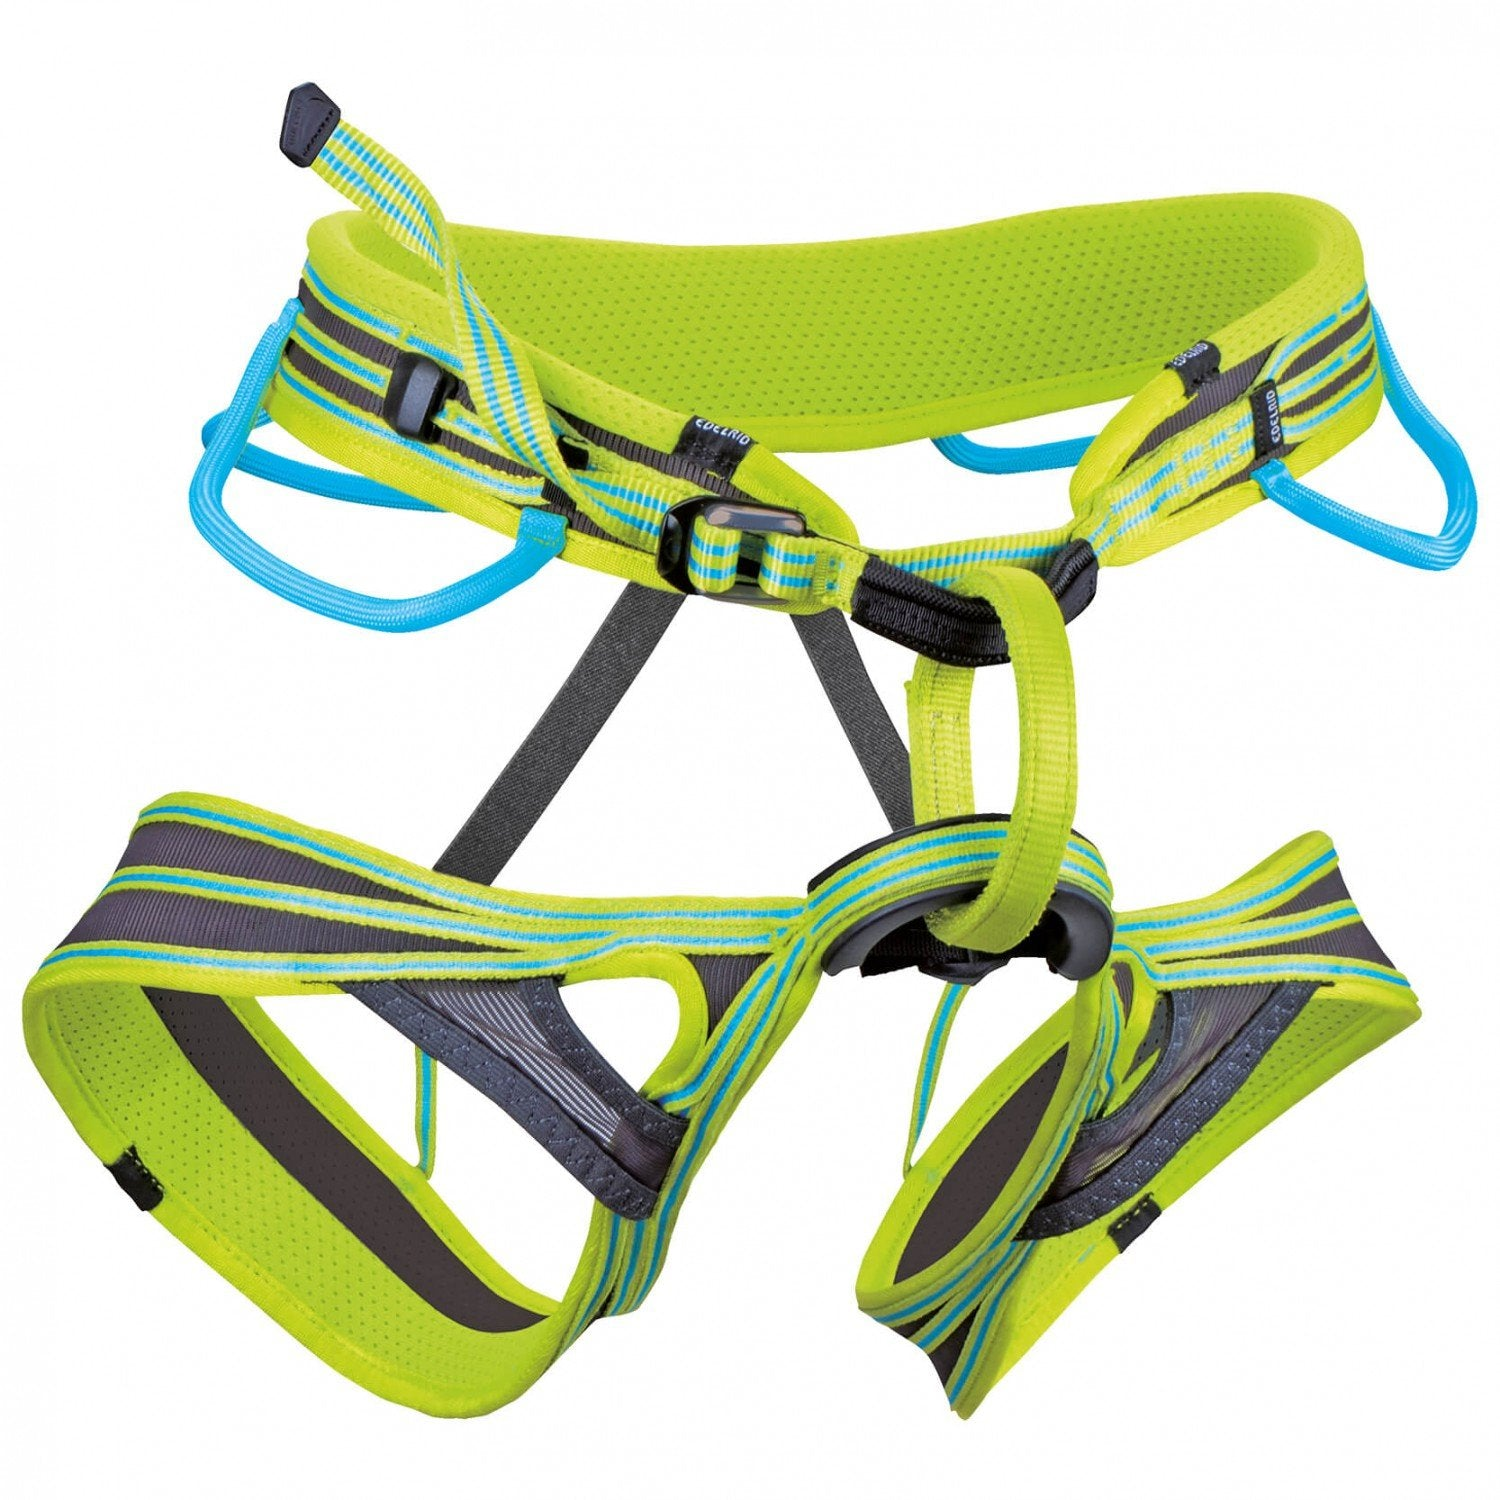 Edelrid Atmosphere Harness, front/side view in green, grey and blue colours